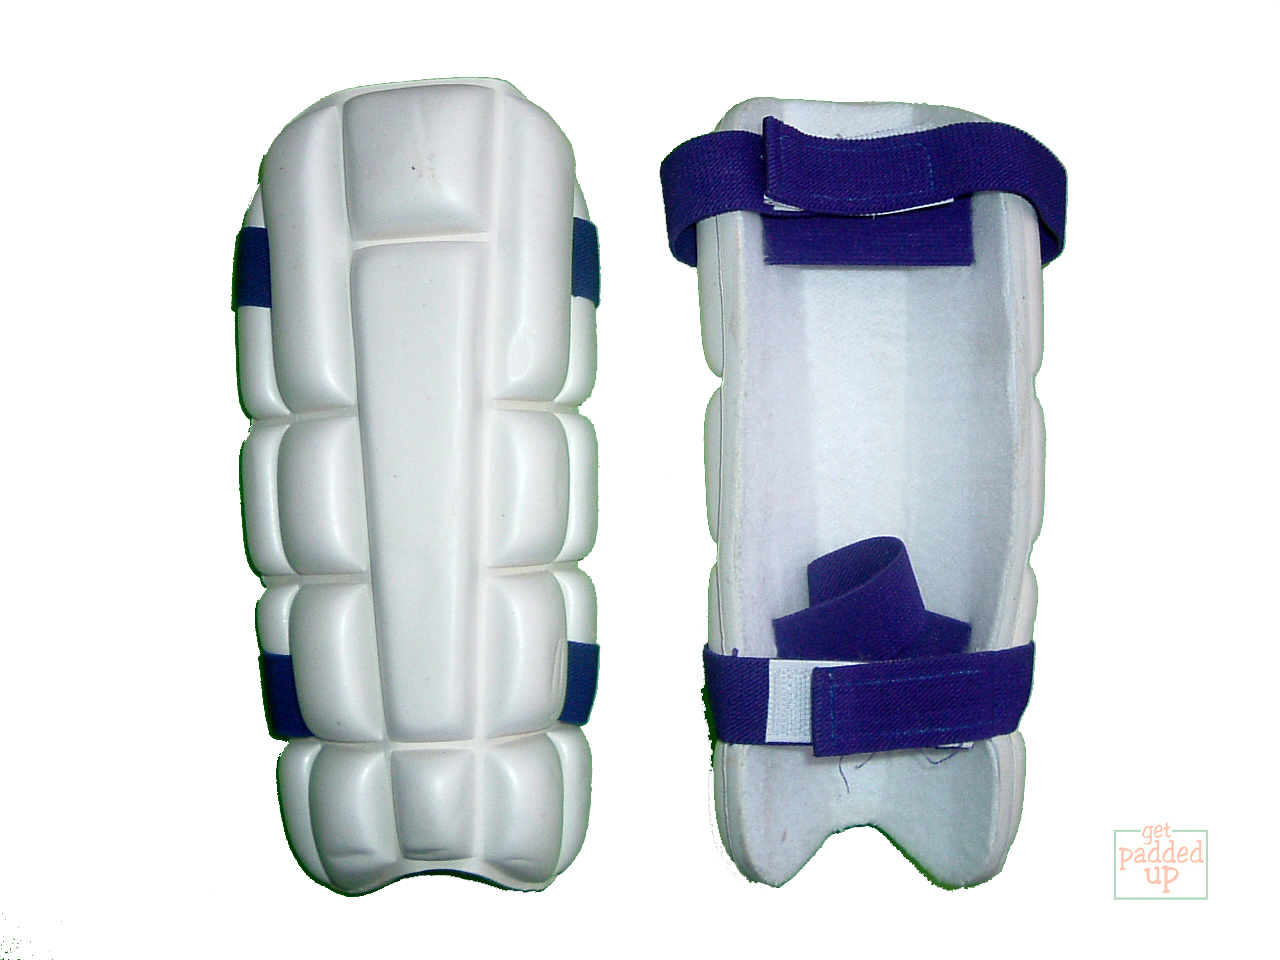 getpaddedup ULTRA CRICKET ARM GUARD